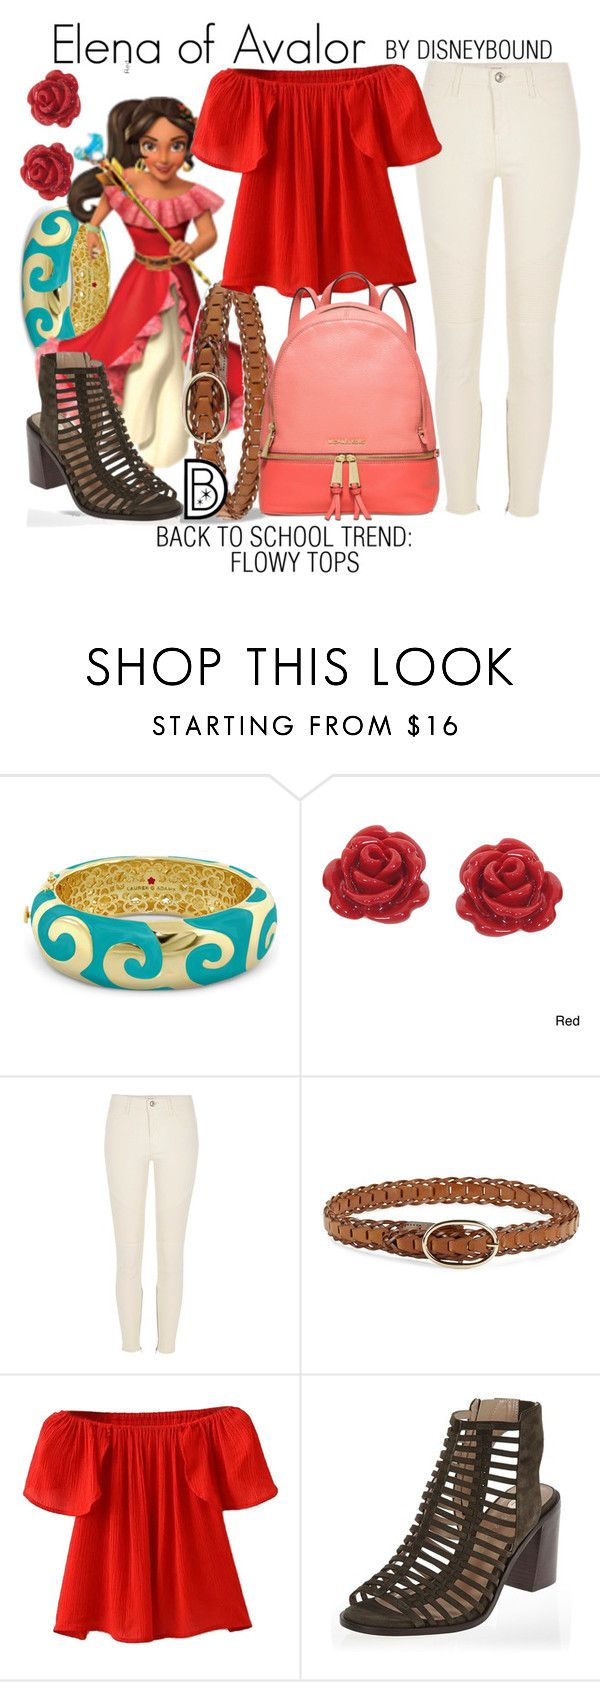 """""""Elena of Avalor"""" by leslieakay ❤ liked on Polyvore featuring Lauren G Adams, Eternally Haute, Disney, River Island, Steve Madden, WithChic, Michael Kors, BackToSchool, disney and disneybound"""